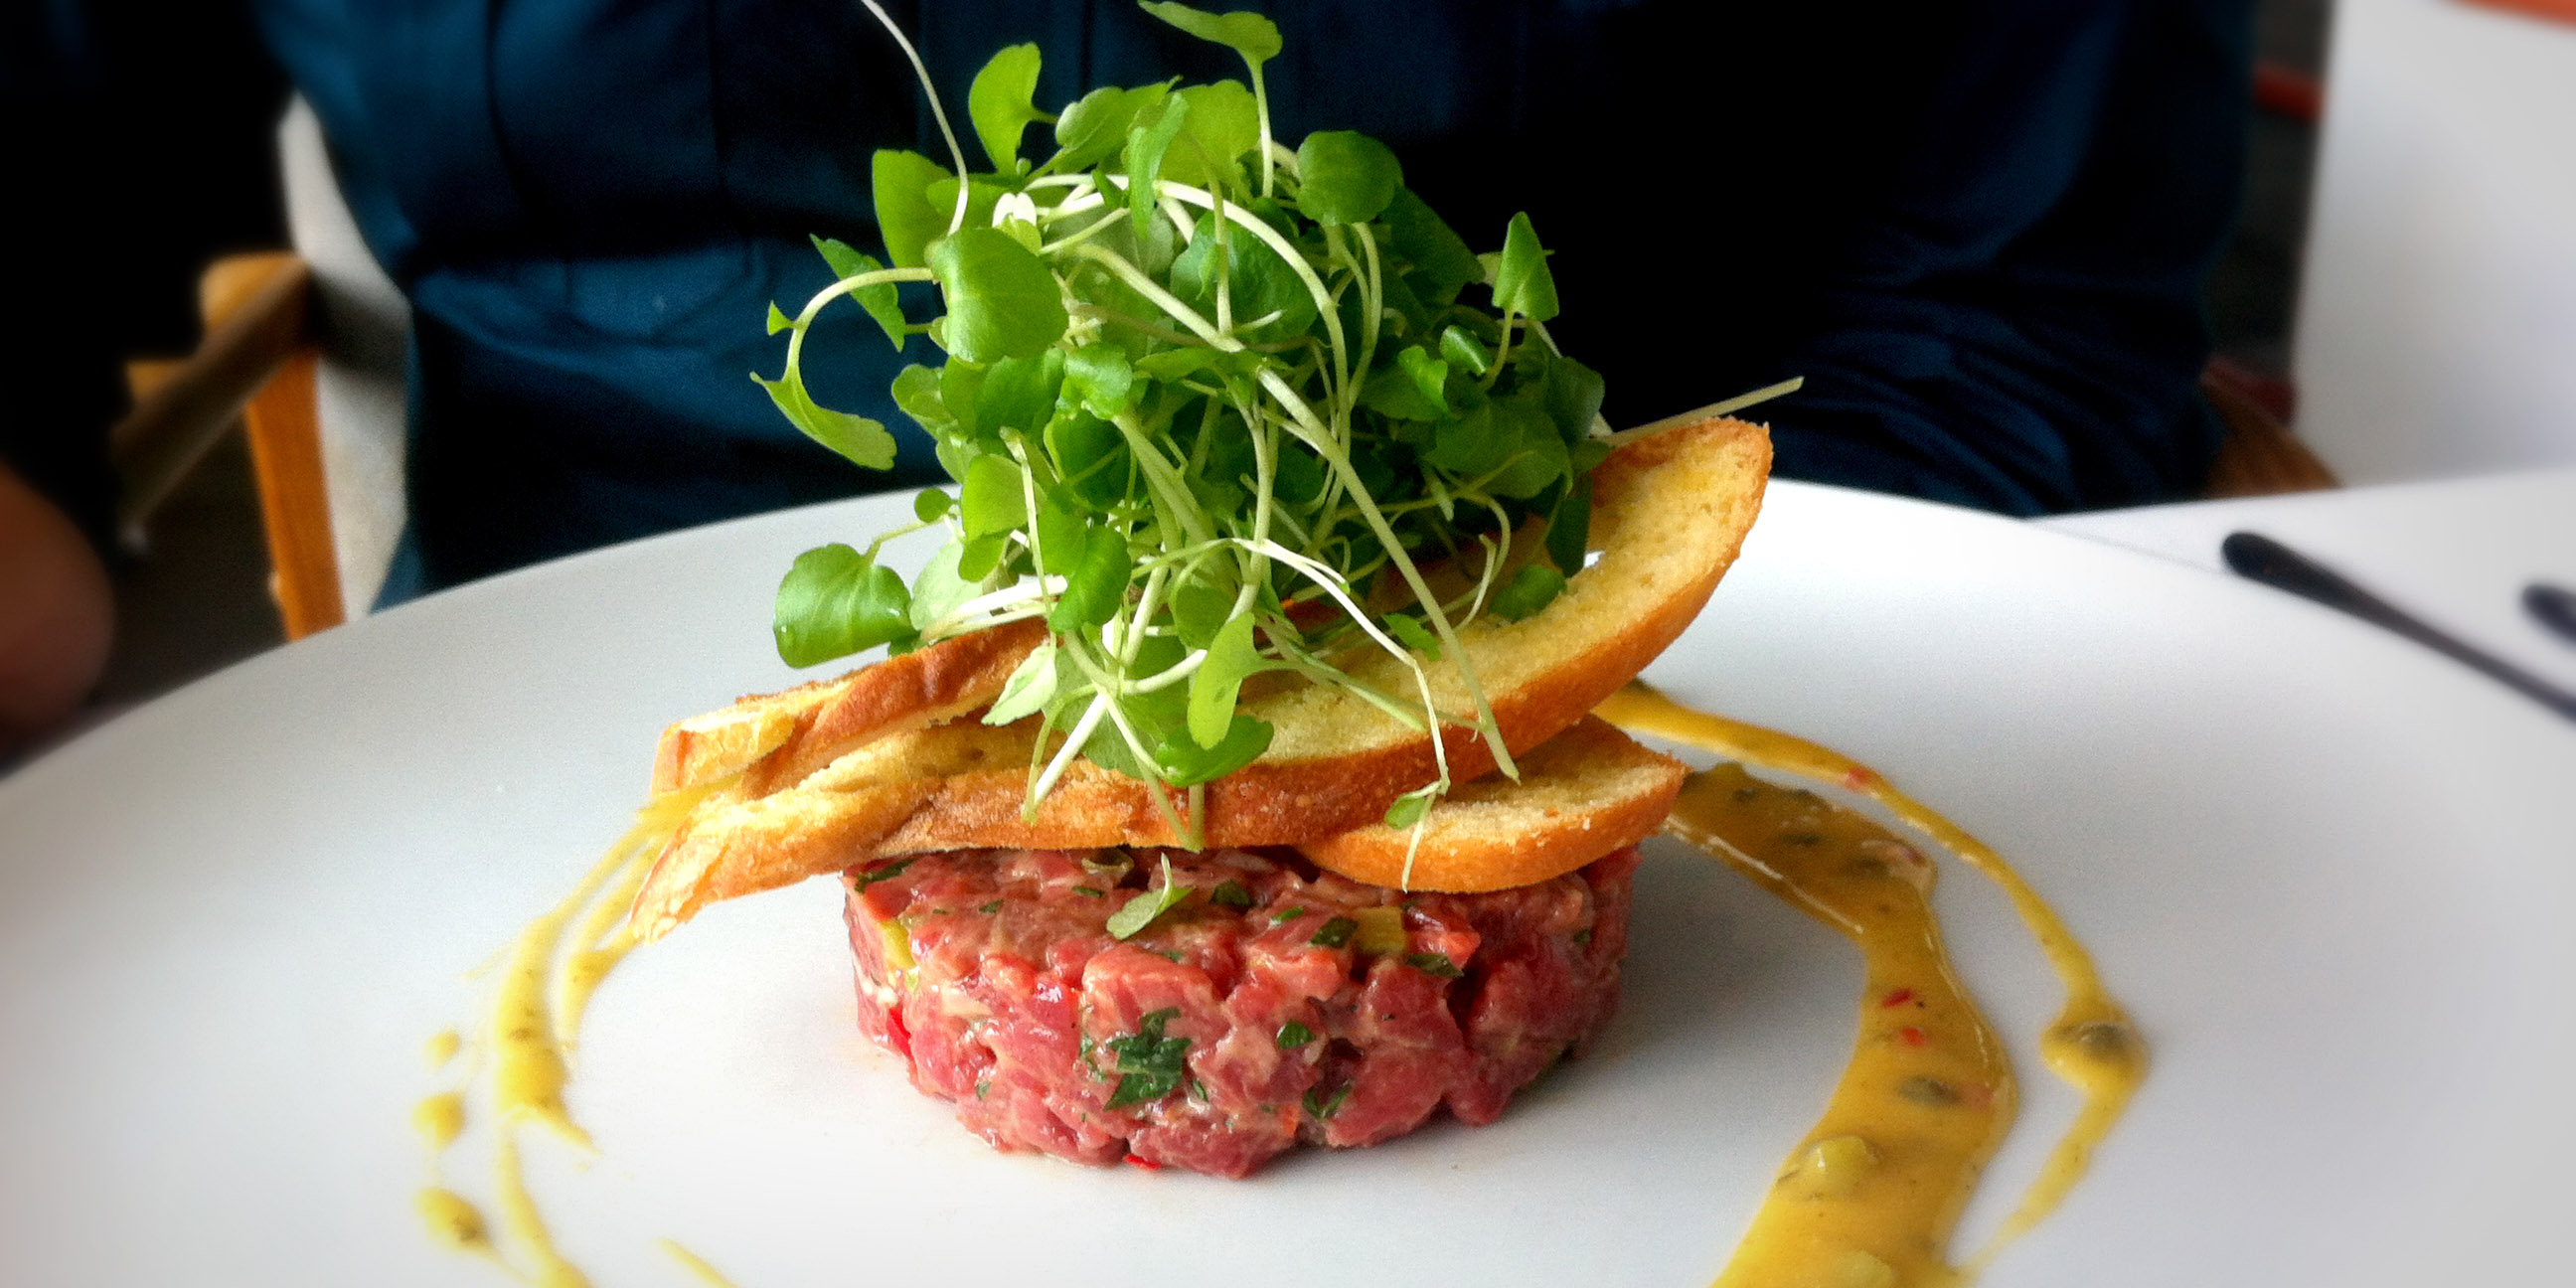 steak tartare | Judskii